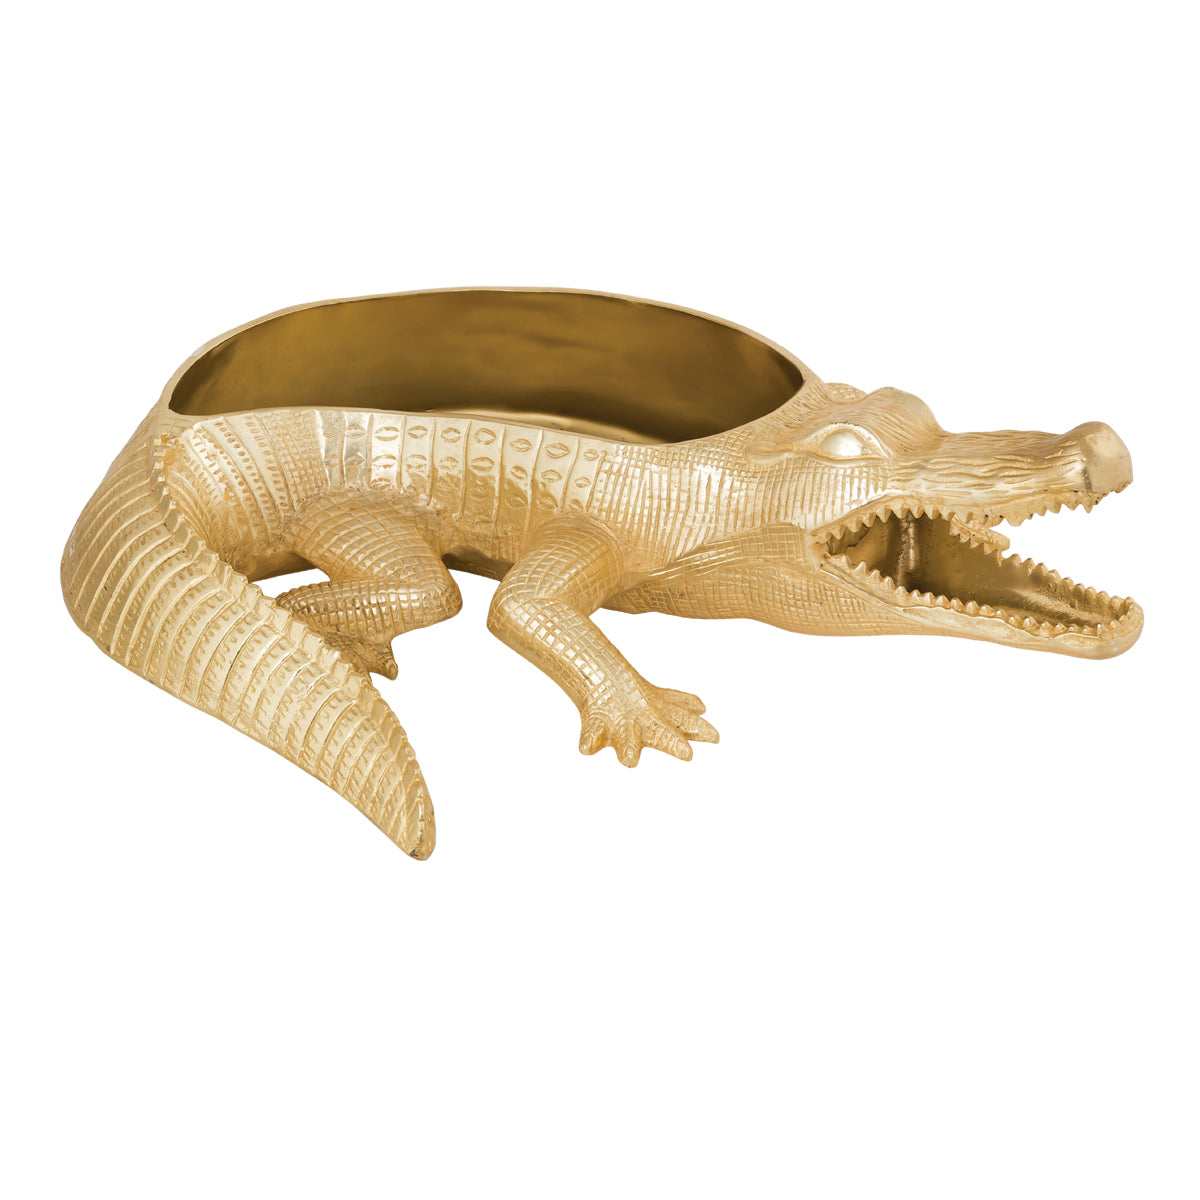 Gator Beverage Tub (Gold)